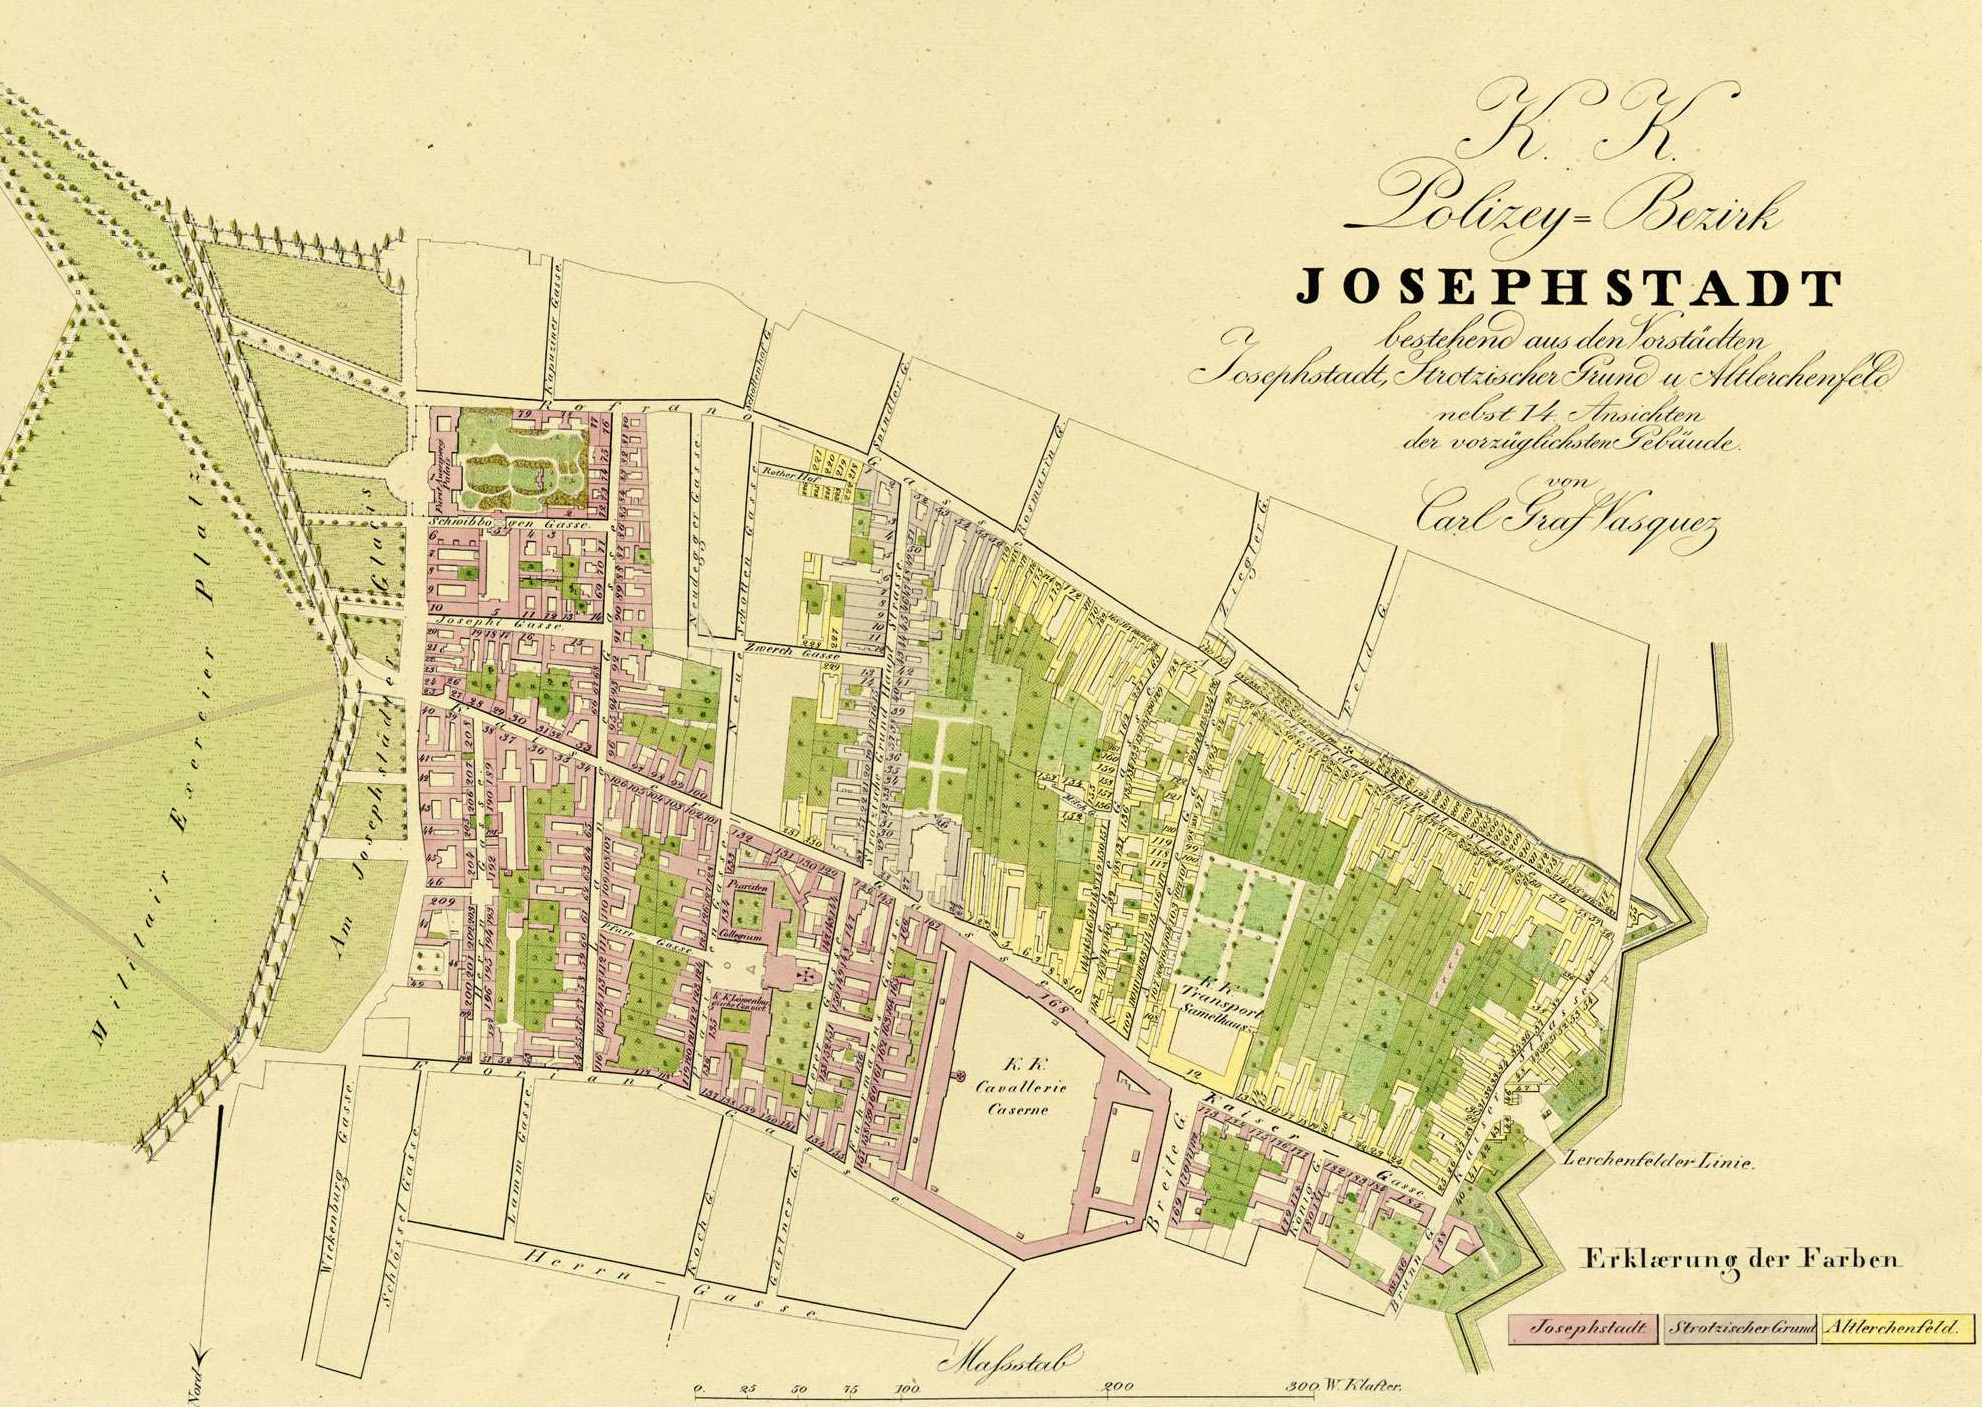 https://upload.wikimedia.org/wikipedia/commons/3/3b/Wien_1830_Vasquez_Josephstadt_crop.jpg